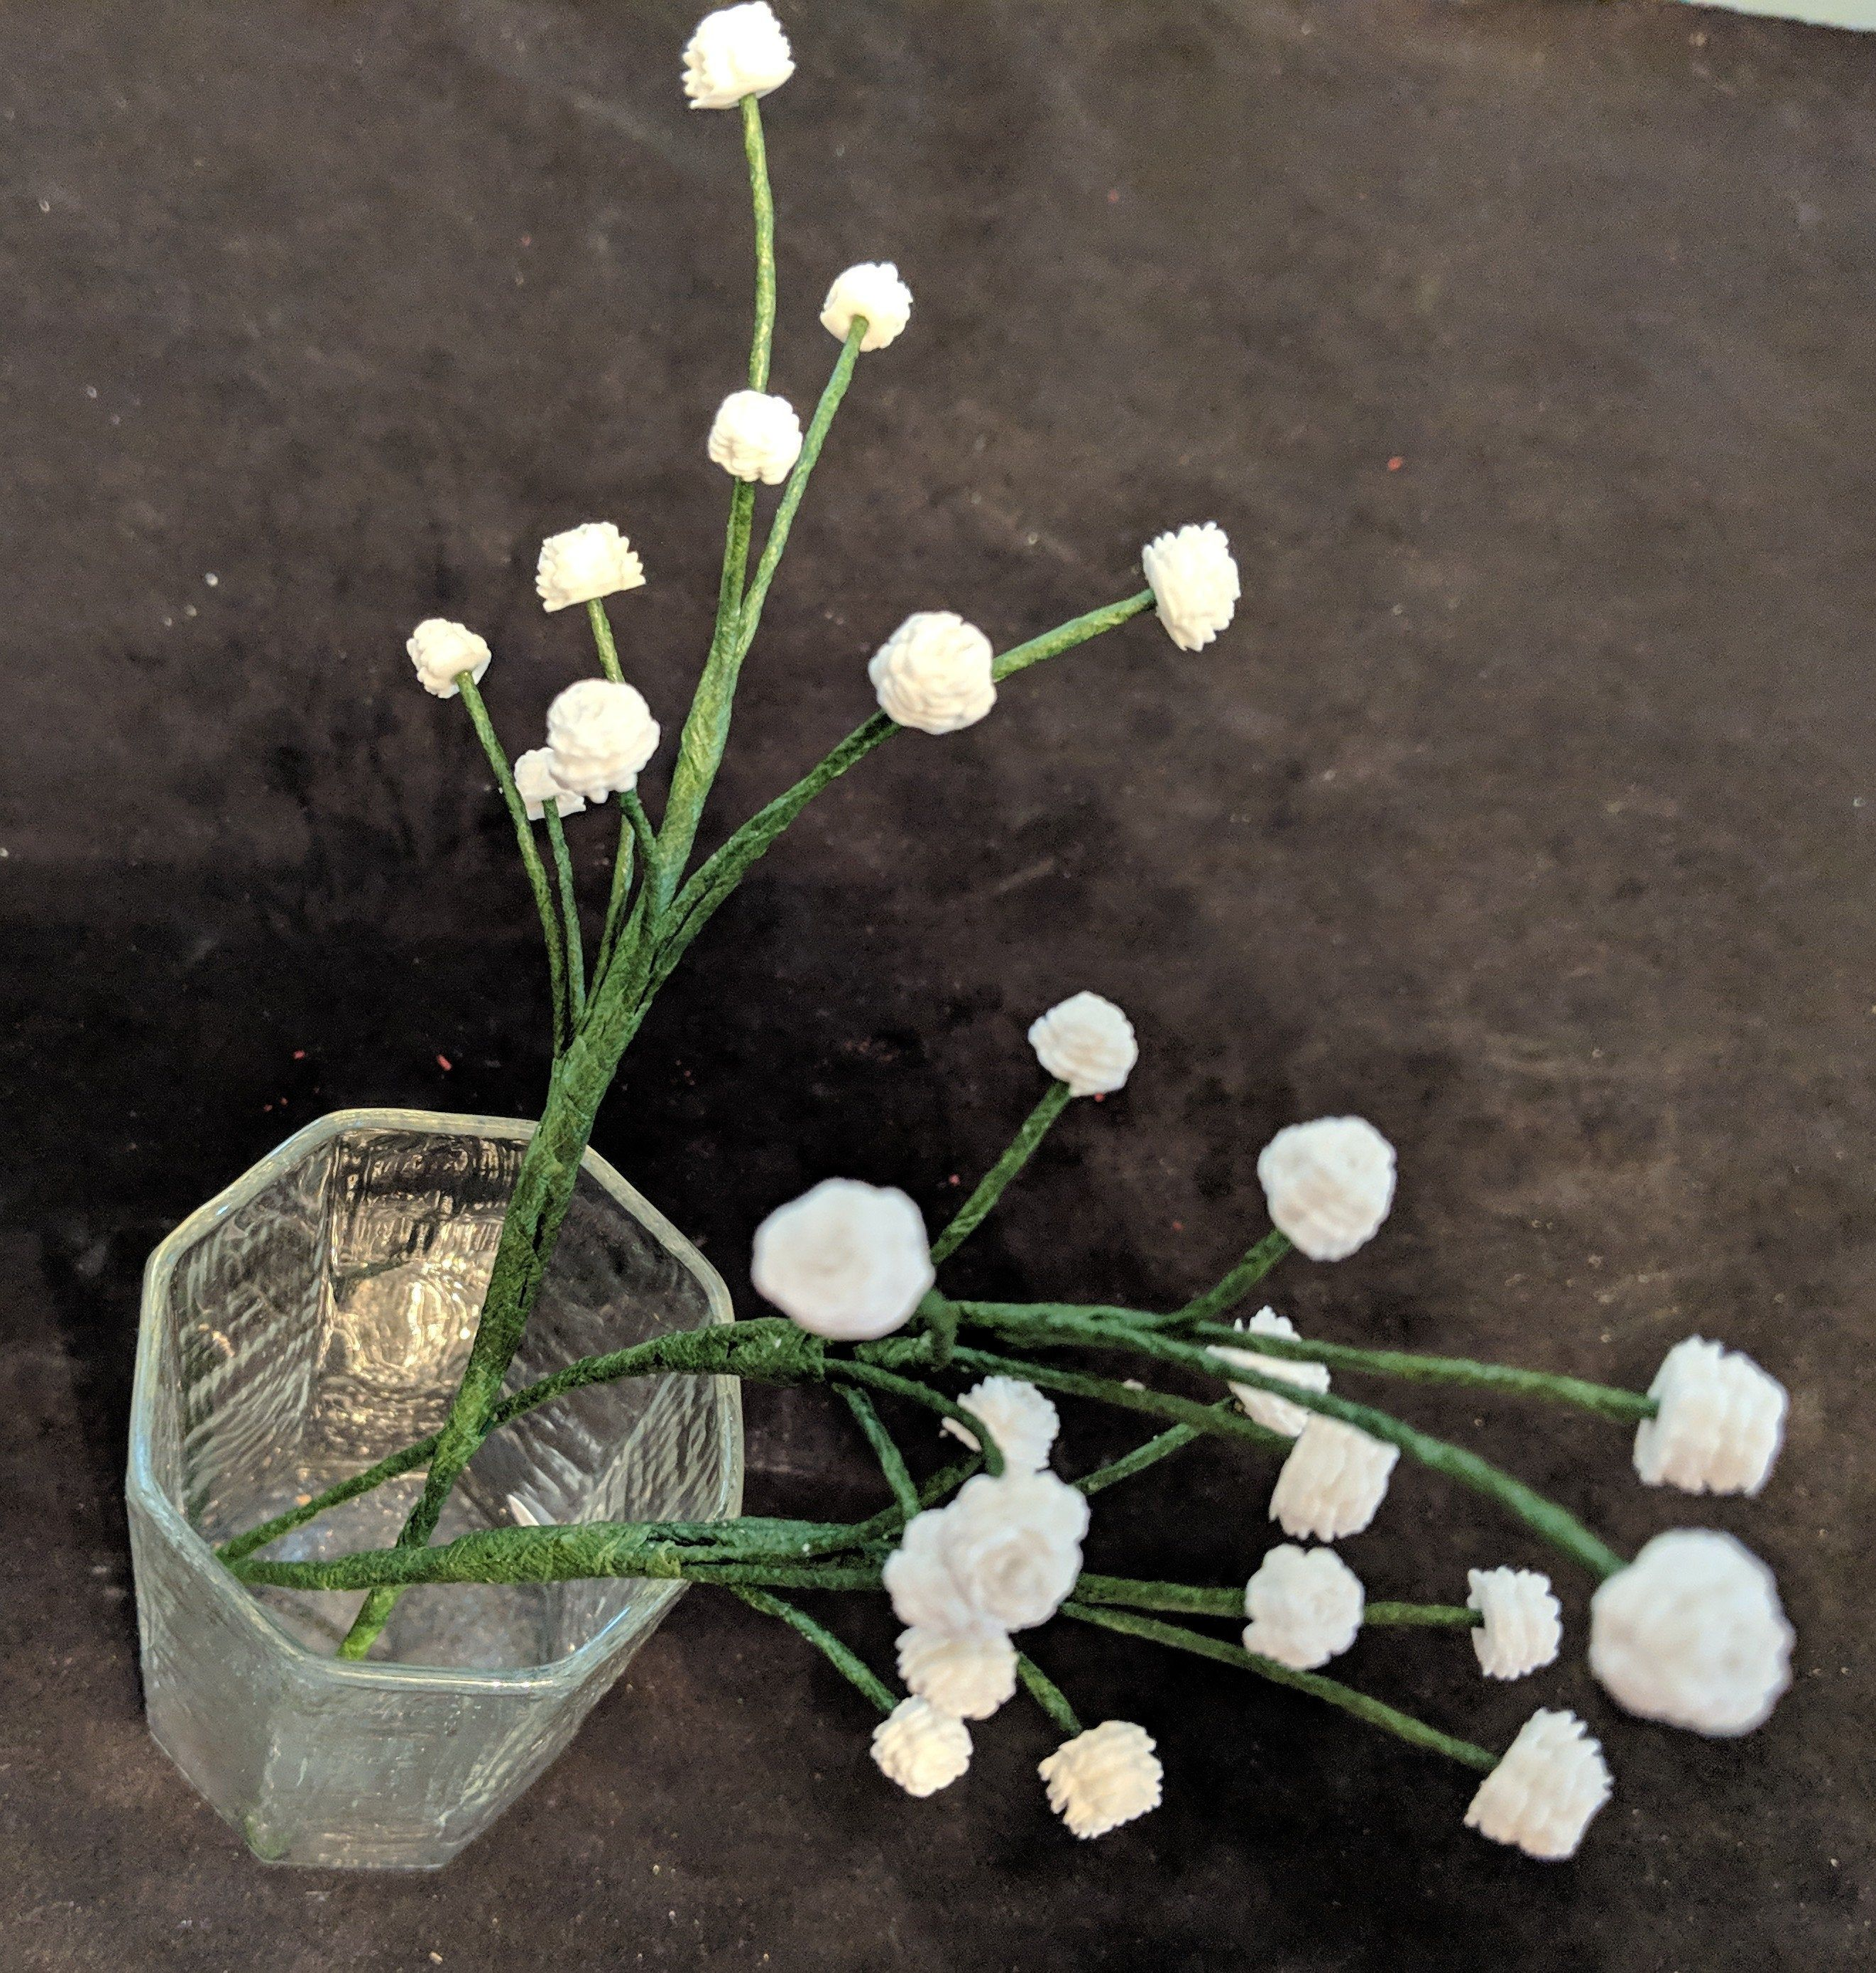 Edible Baby S Breath 3 Bunches Sprigs Edible Gum Paste Filler Flowerany Colors Cake Decoration Fondant Sugar Flower Wedding Cake Cake Topper In 2020 Wedding Cakes With Flowers Sugar Flowers Colorful Cakes